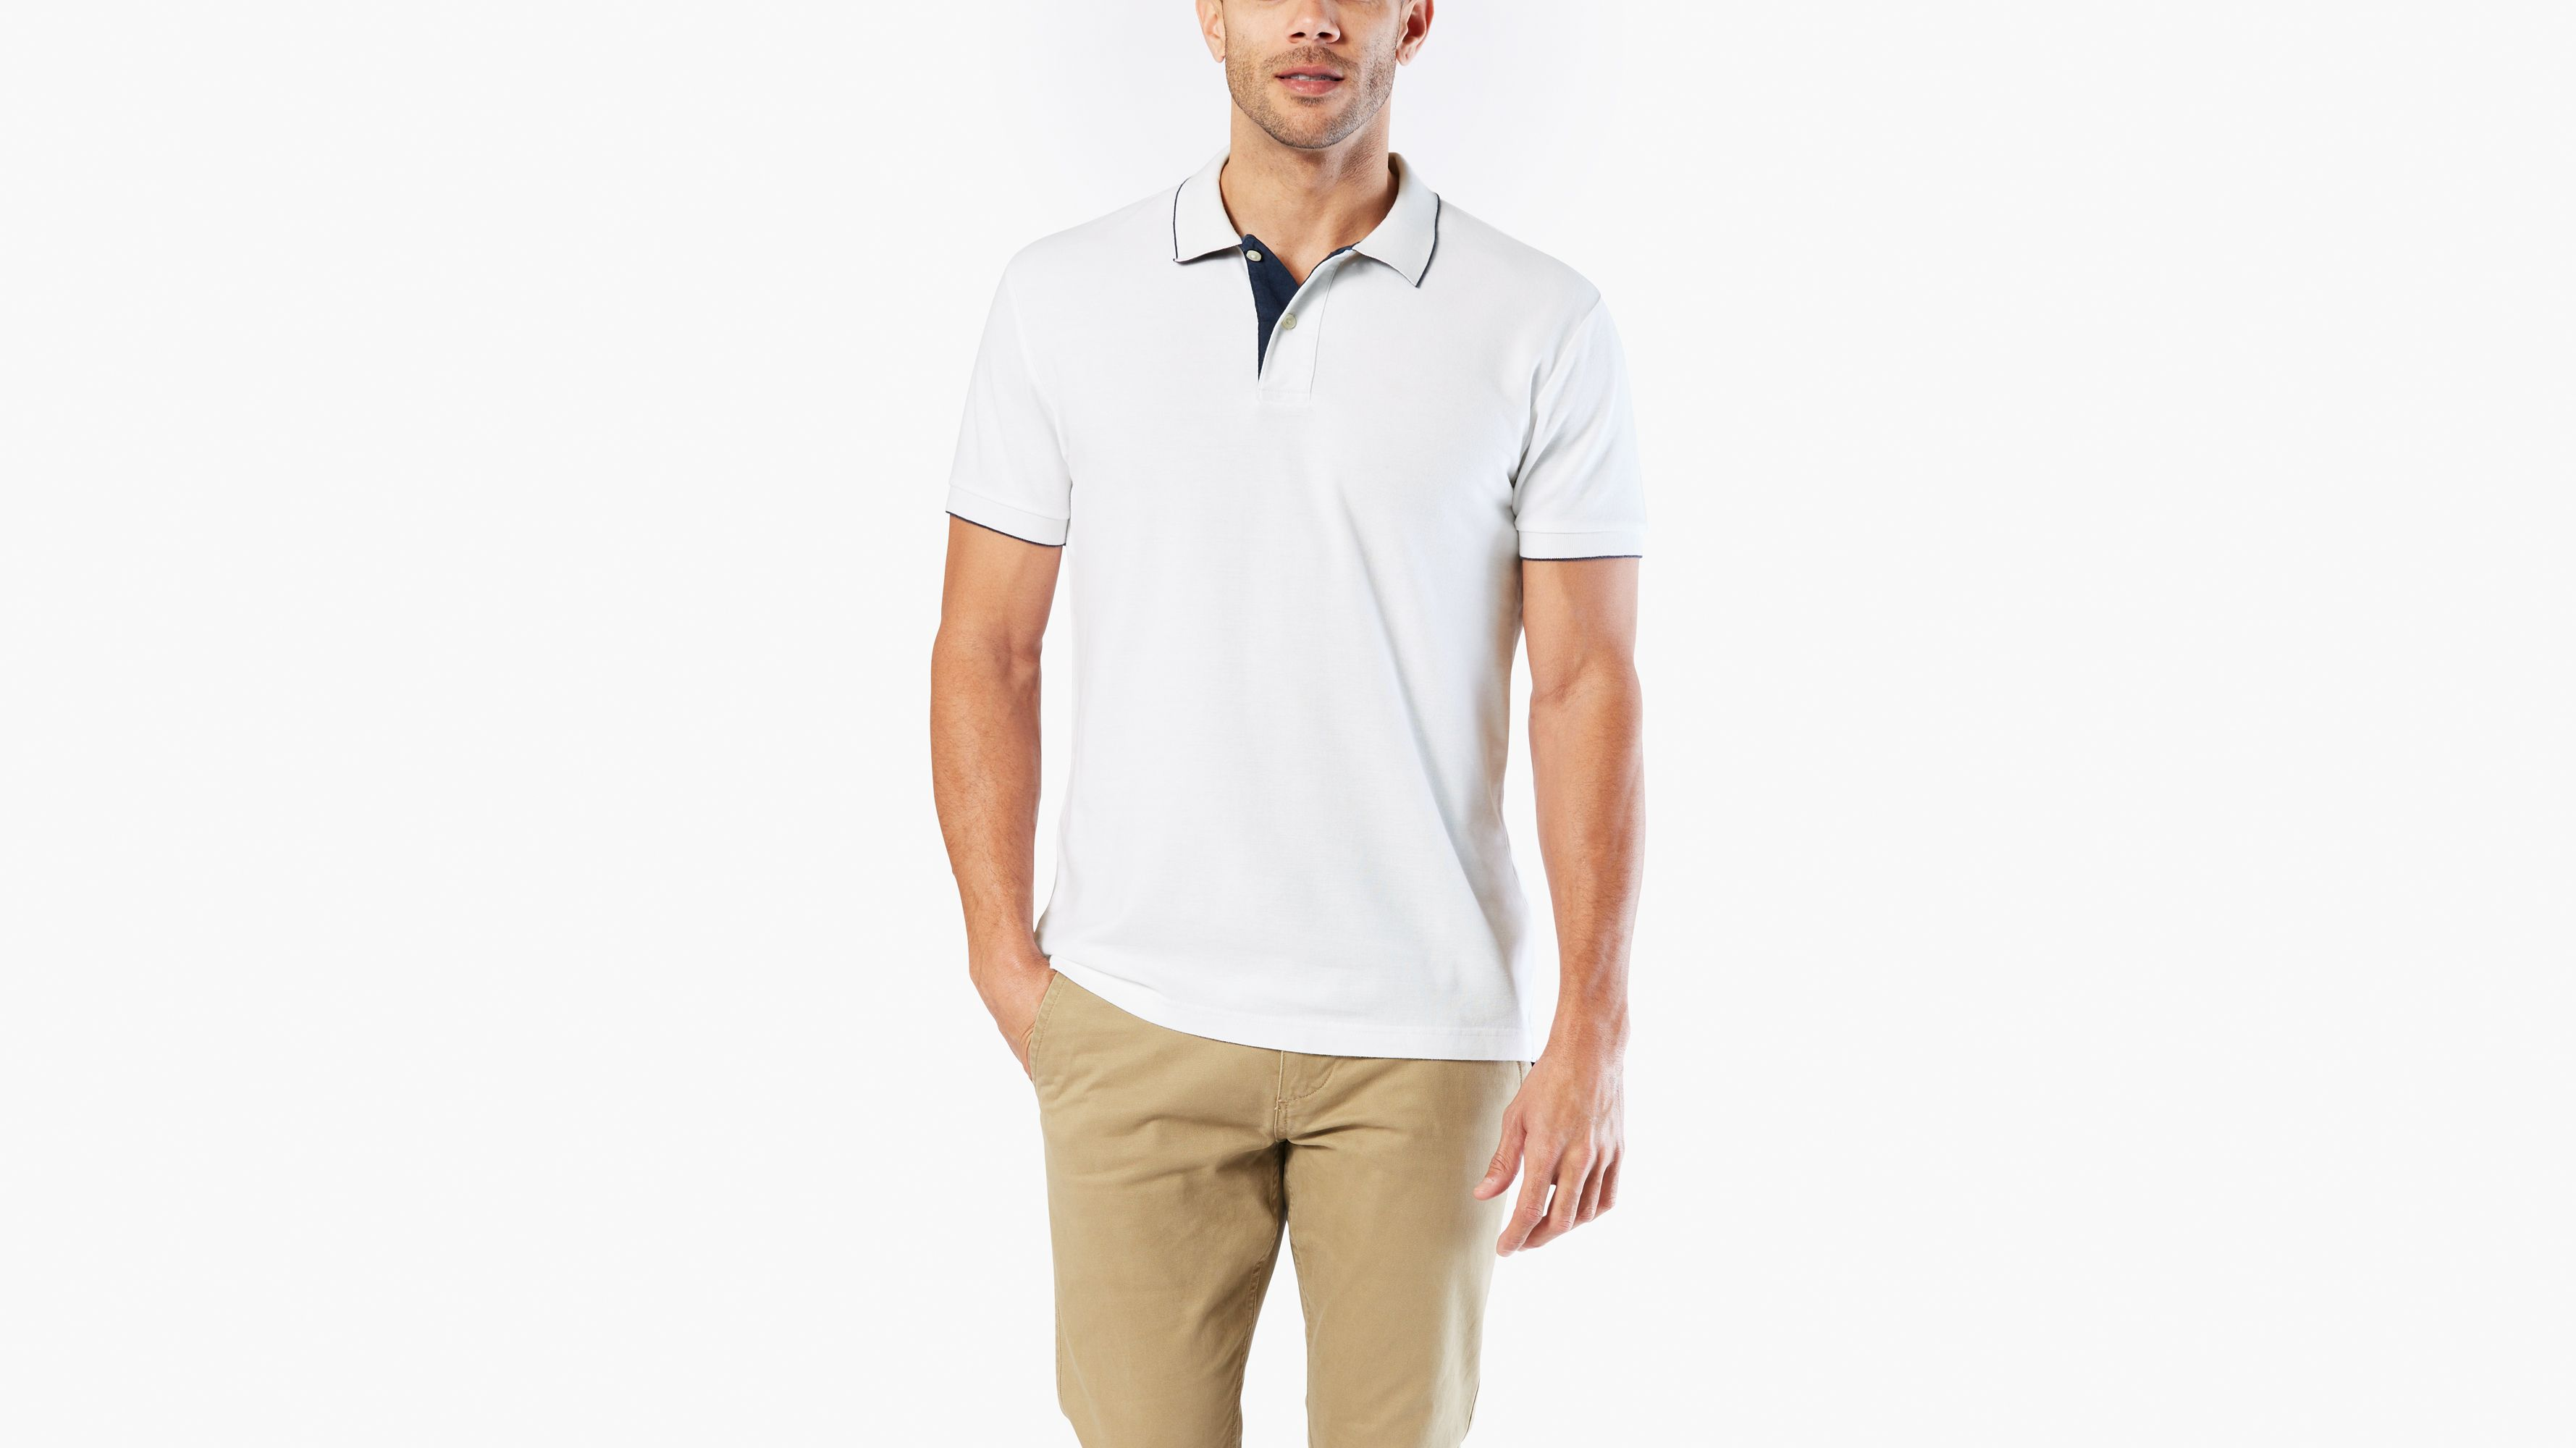 Men's DockersDockers® Shirtsamp; Polo Tees Shop Us 29IeEWHYDb